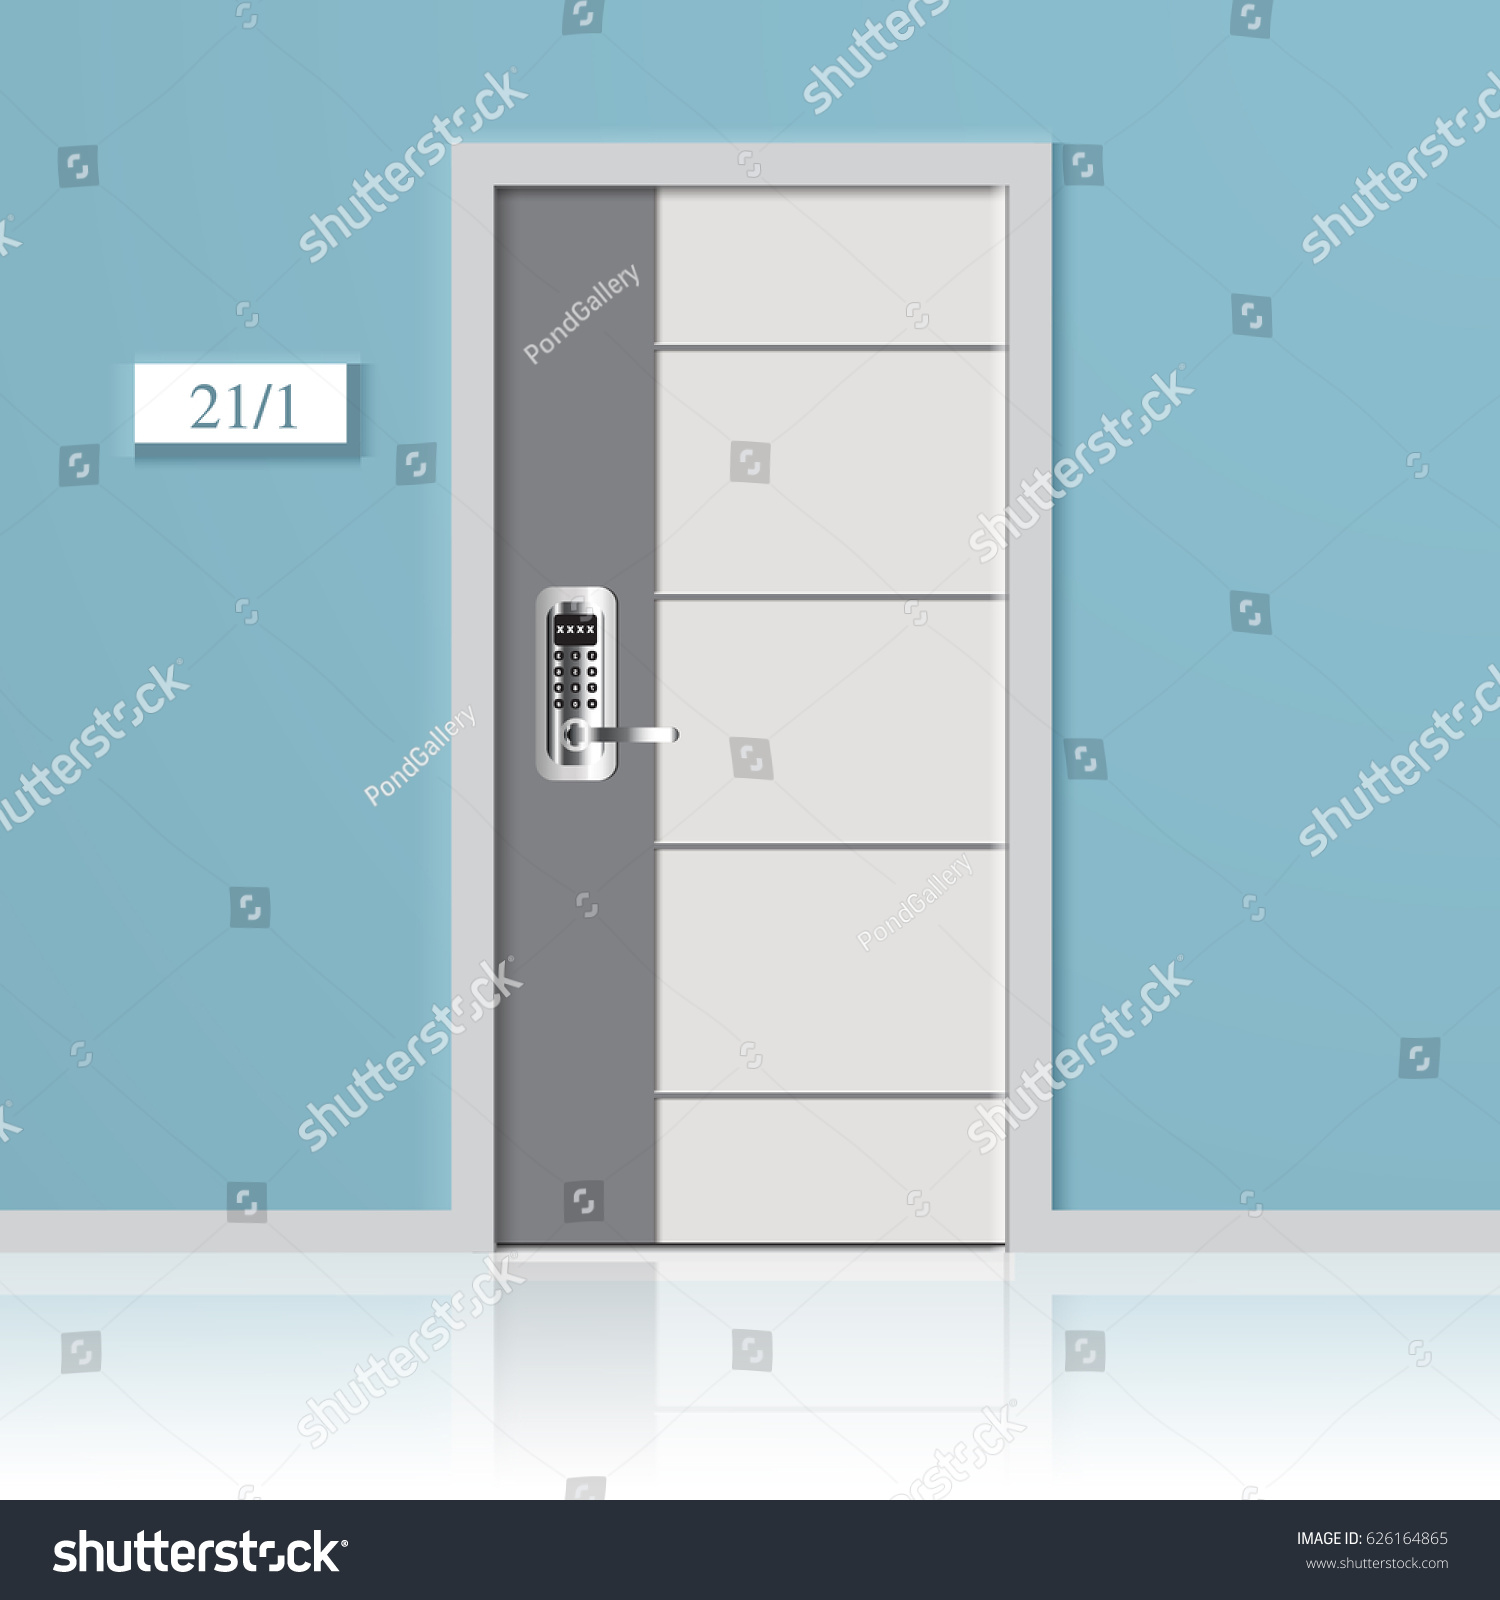 Elements Architecture Front Doors Background Closed Stock Vector ...